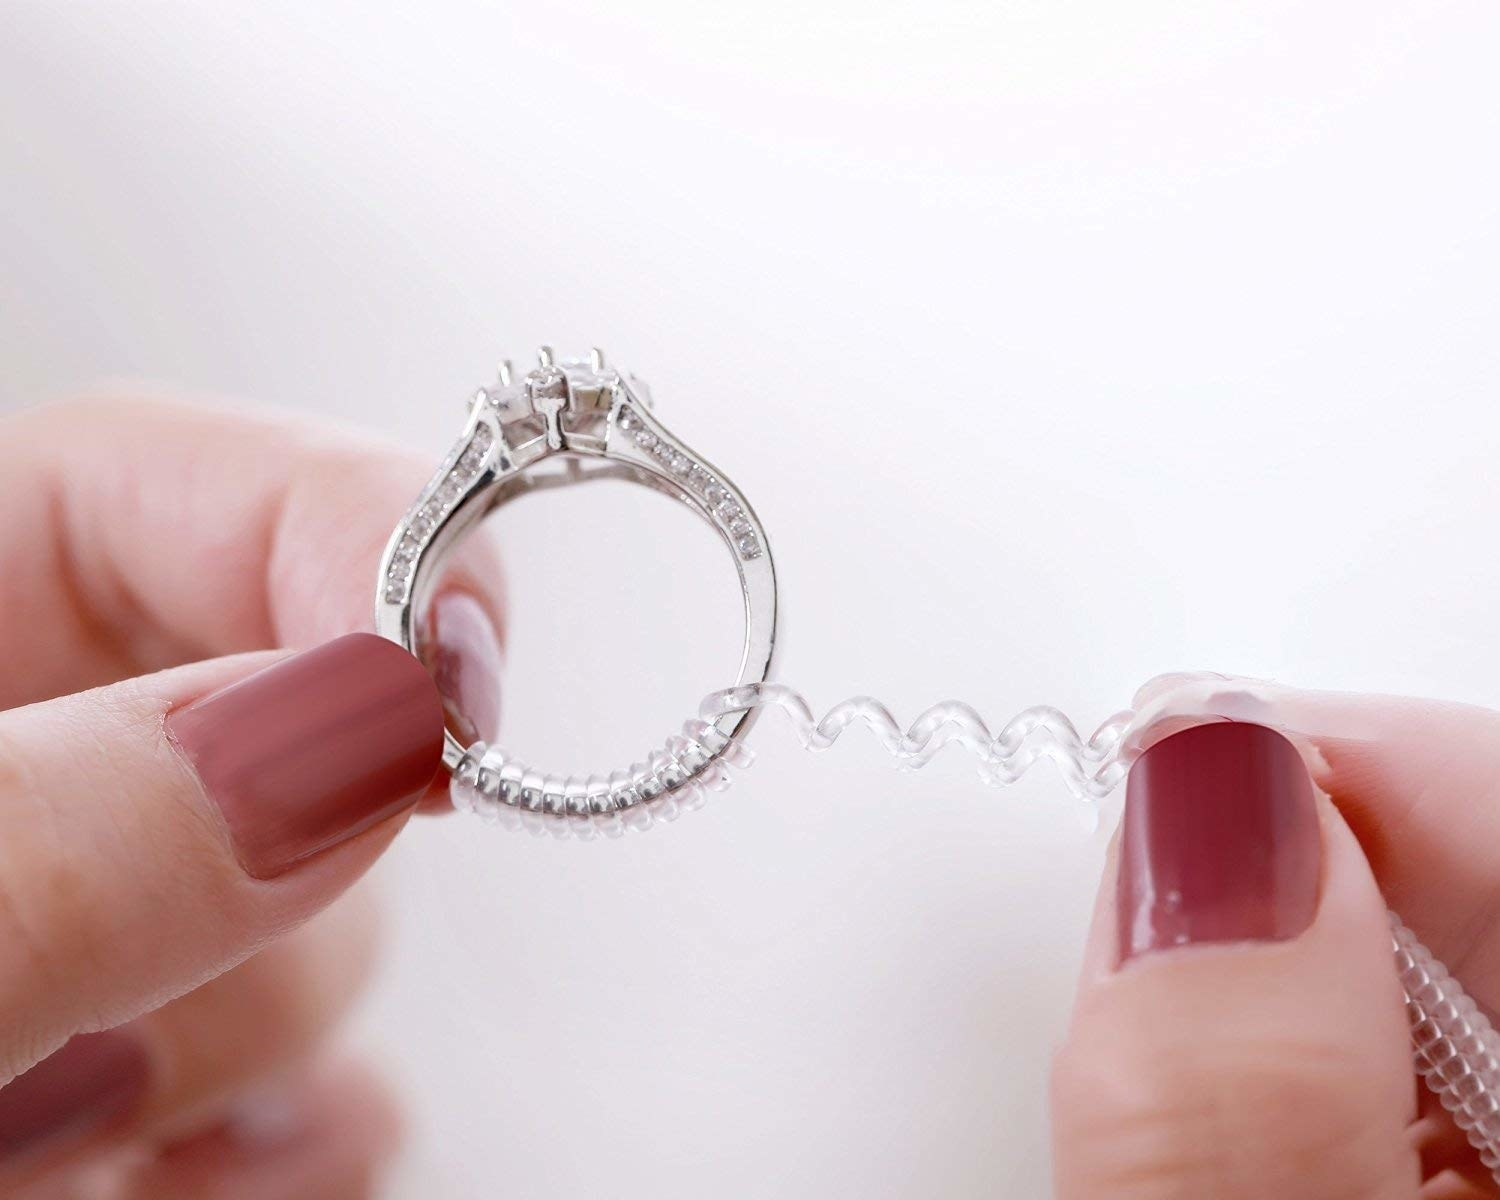 Ring with clear plastic coil string wrapped around base